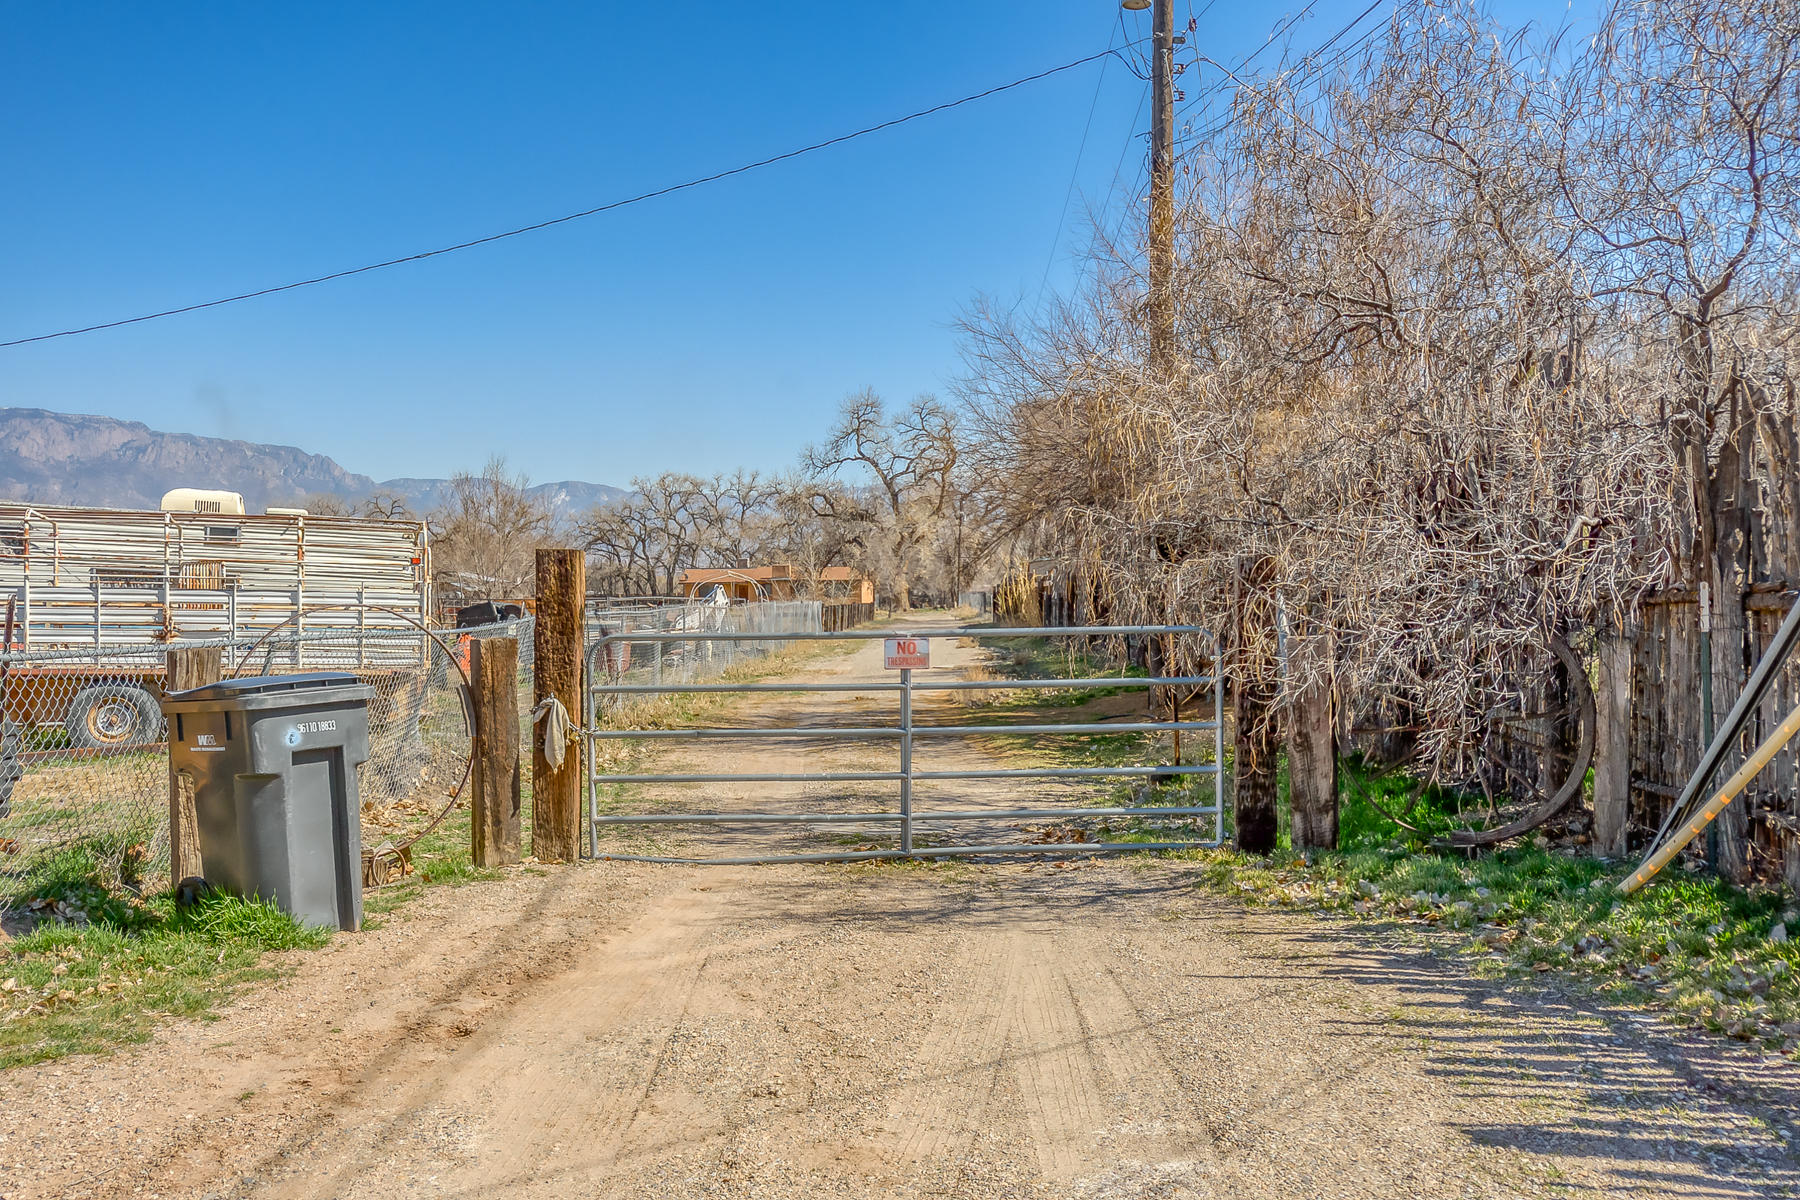 : Special Opportunity in the North Valley! This 2.834 parcel is perfectly located for development! Create your very own private compound or subdivide and build. The property has a 1350 sf house that has some structural issues and will convey '' as is'' Access to endless trails and open space. Nestled under cottonwoods , peace and tranquilityDitch access for irrigation availible